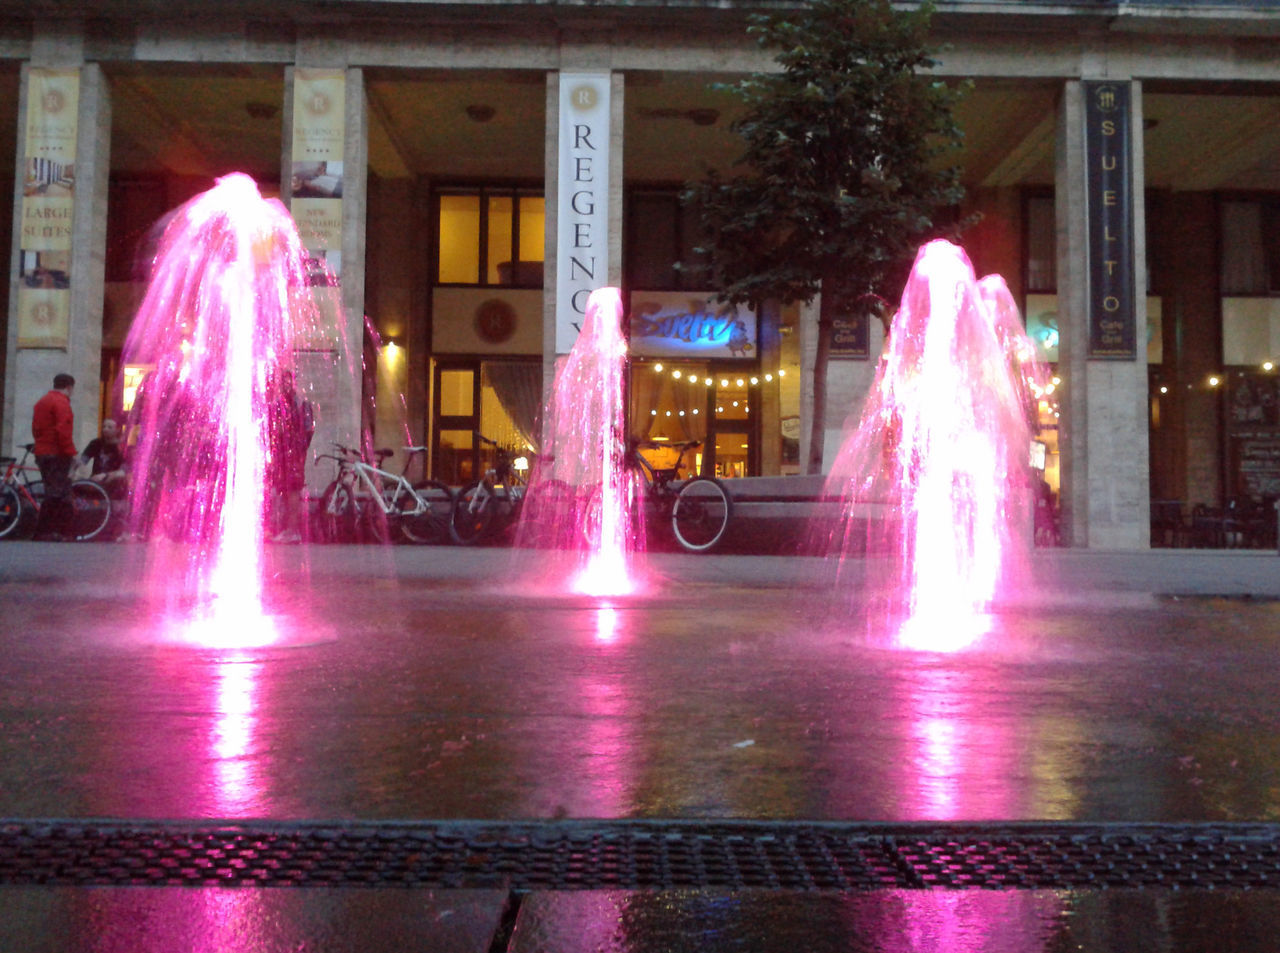 illuminated, night, architecture, motion, built structure, building exterior, long exposure, incidental people, architectural column, real people, city, pink color, blurred motion, men, outdoors, glowing, fountain, building, event, light, purple